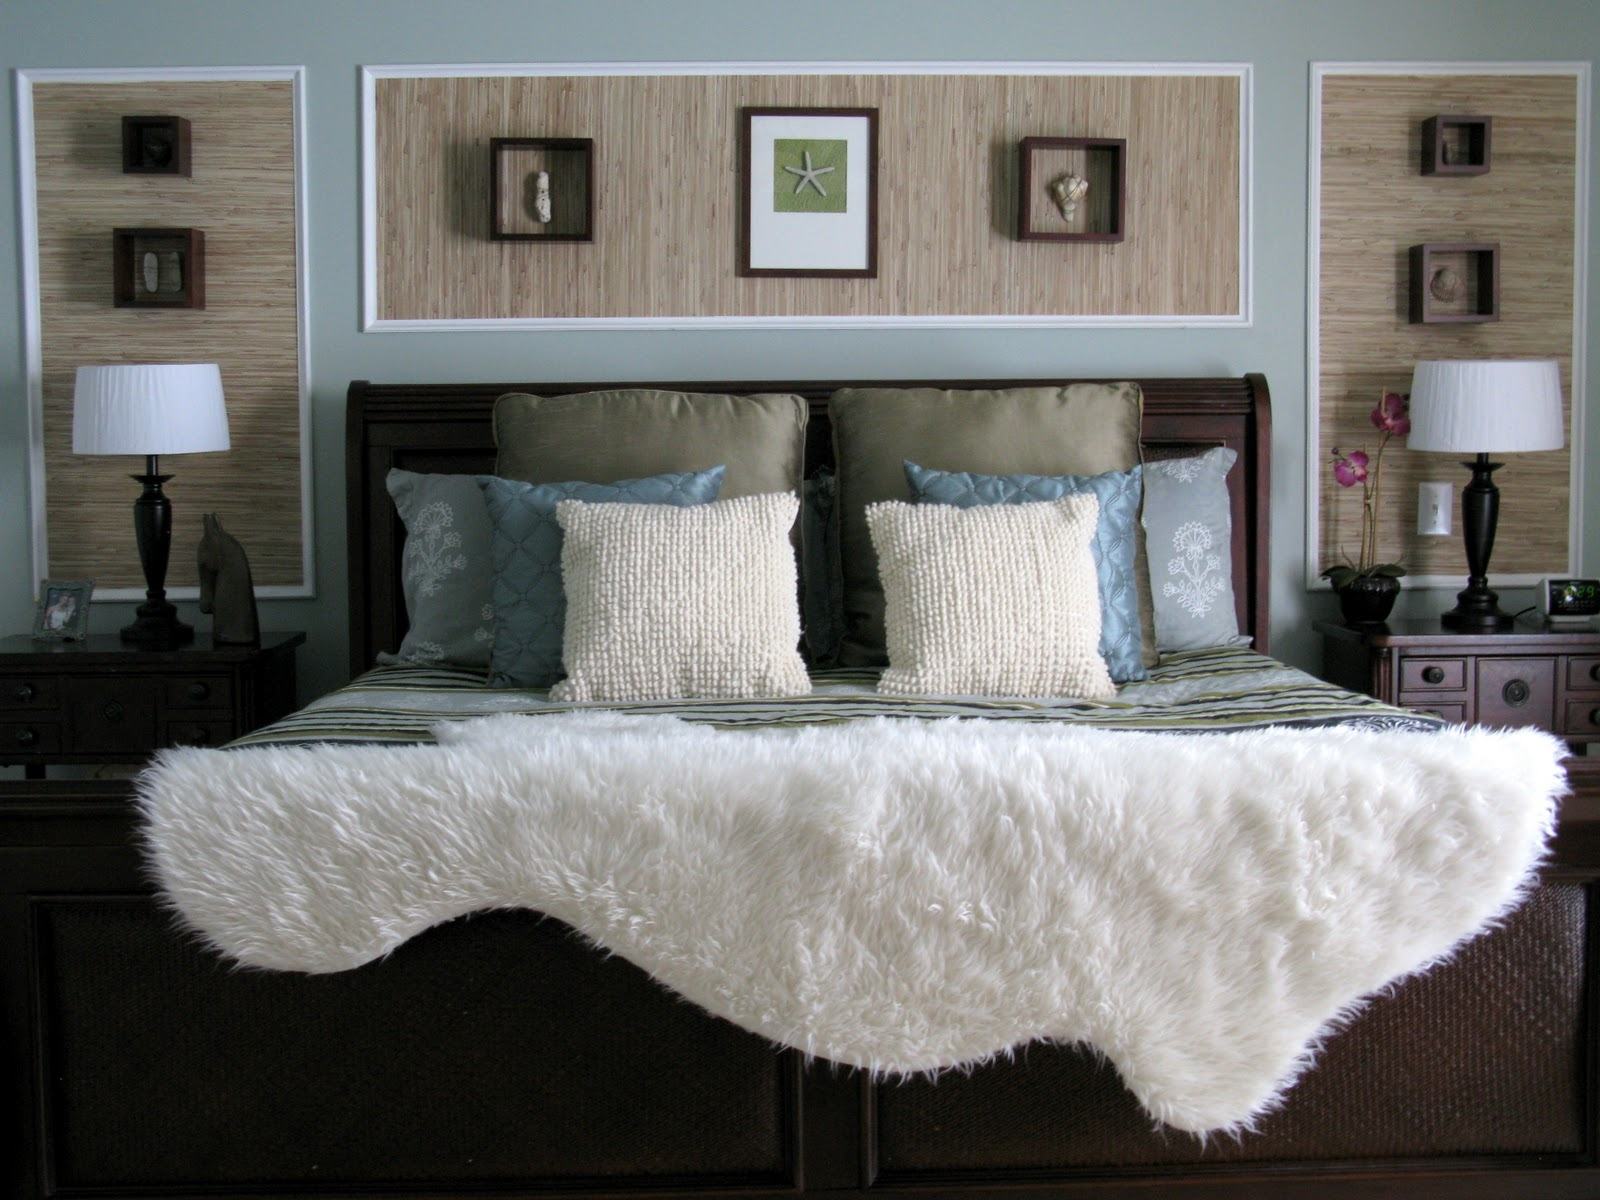 Loveyourroom voted one of the top bedrooms by houzz - Bedroom wall decor ideas ...